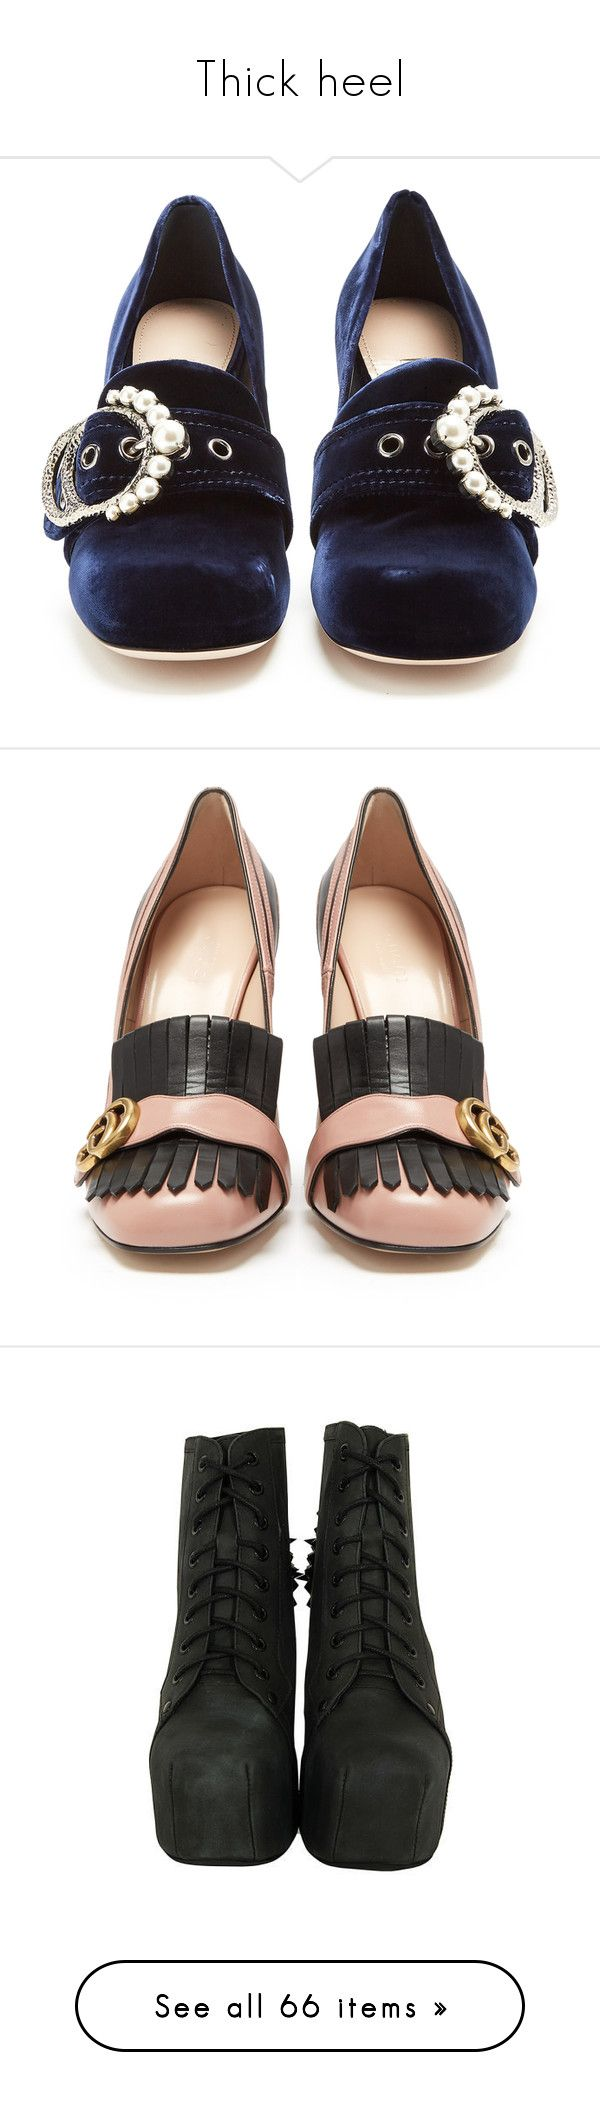 """Thick heel"" by minleepam ❤ liked on Polyvore featuring shoes, loafers, block-heel shoes, miu miu loafers, block heel loafers, chunky loafers, navy velvet shoes, pumps, zebra print pumps and gucci pumps"